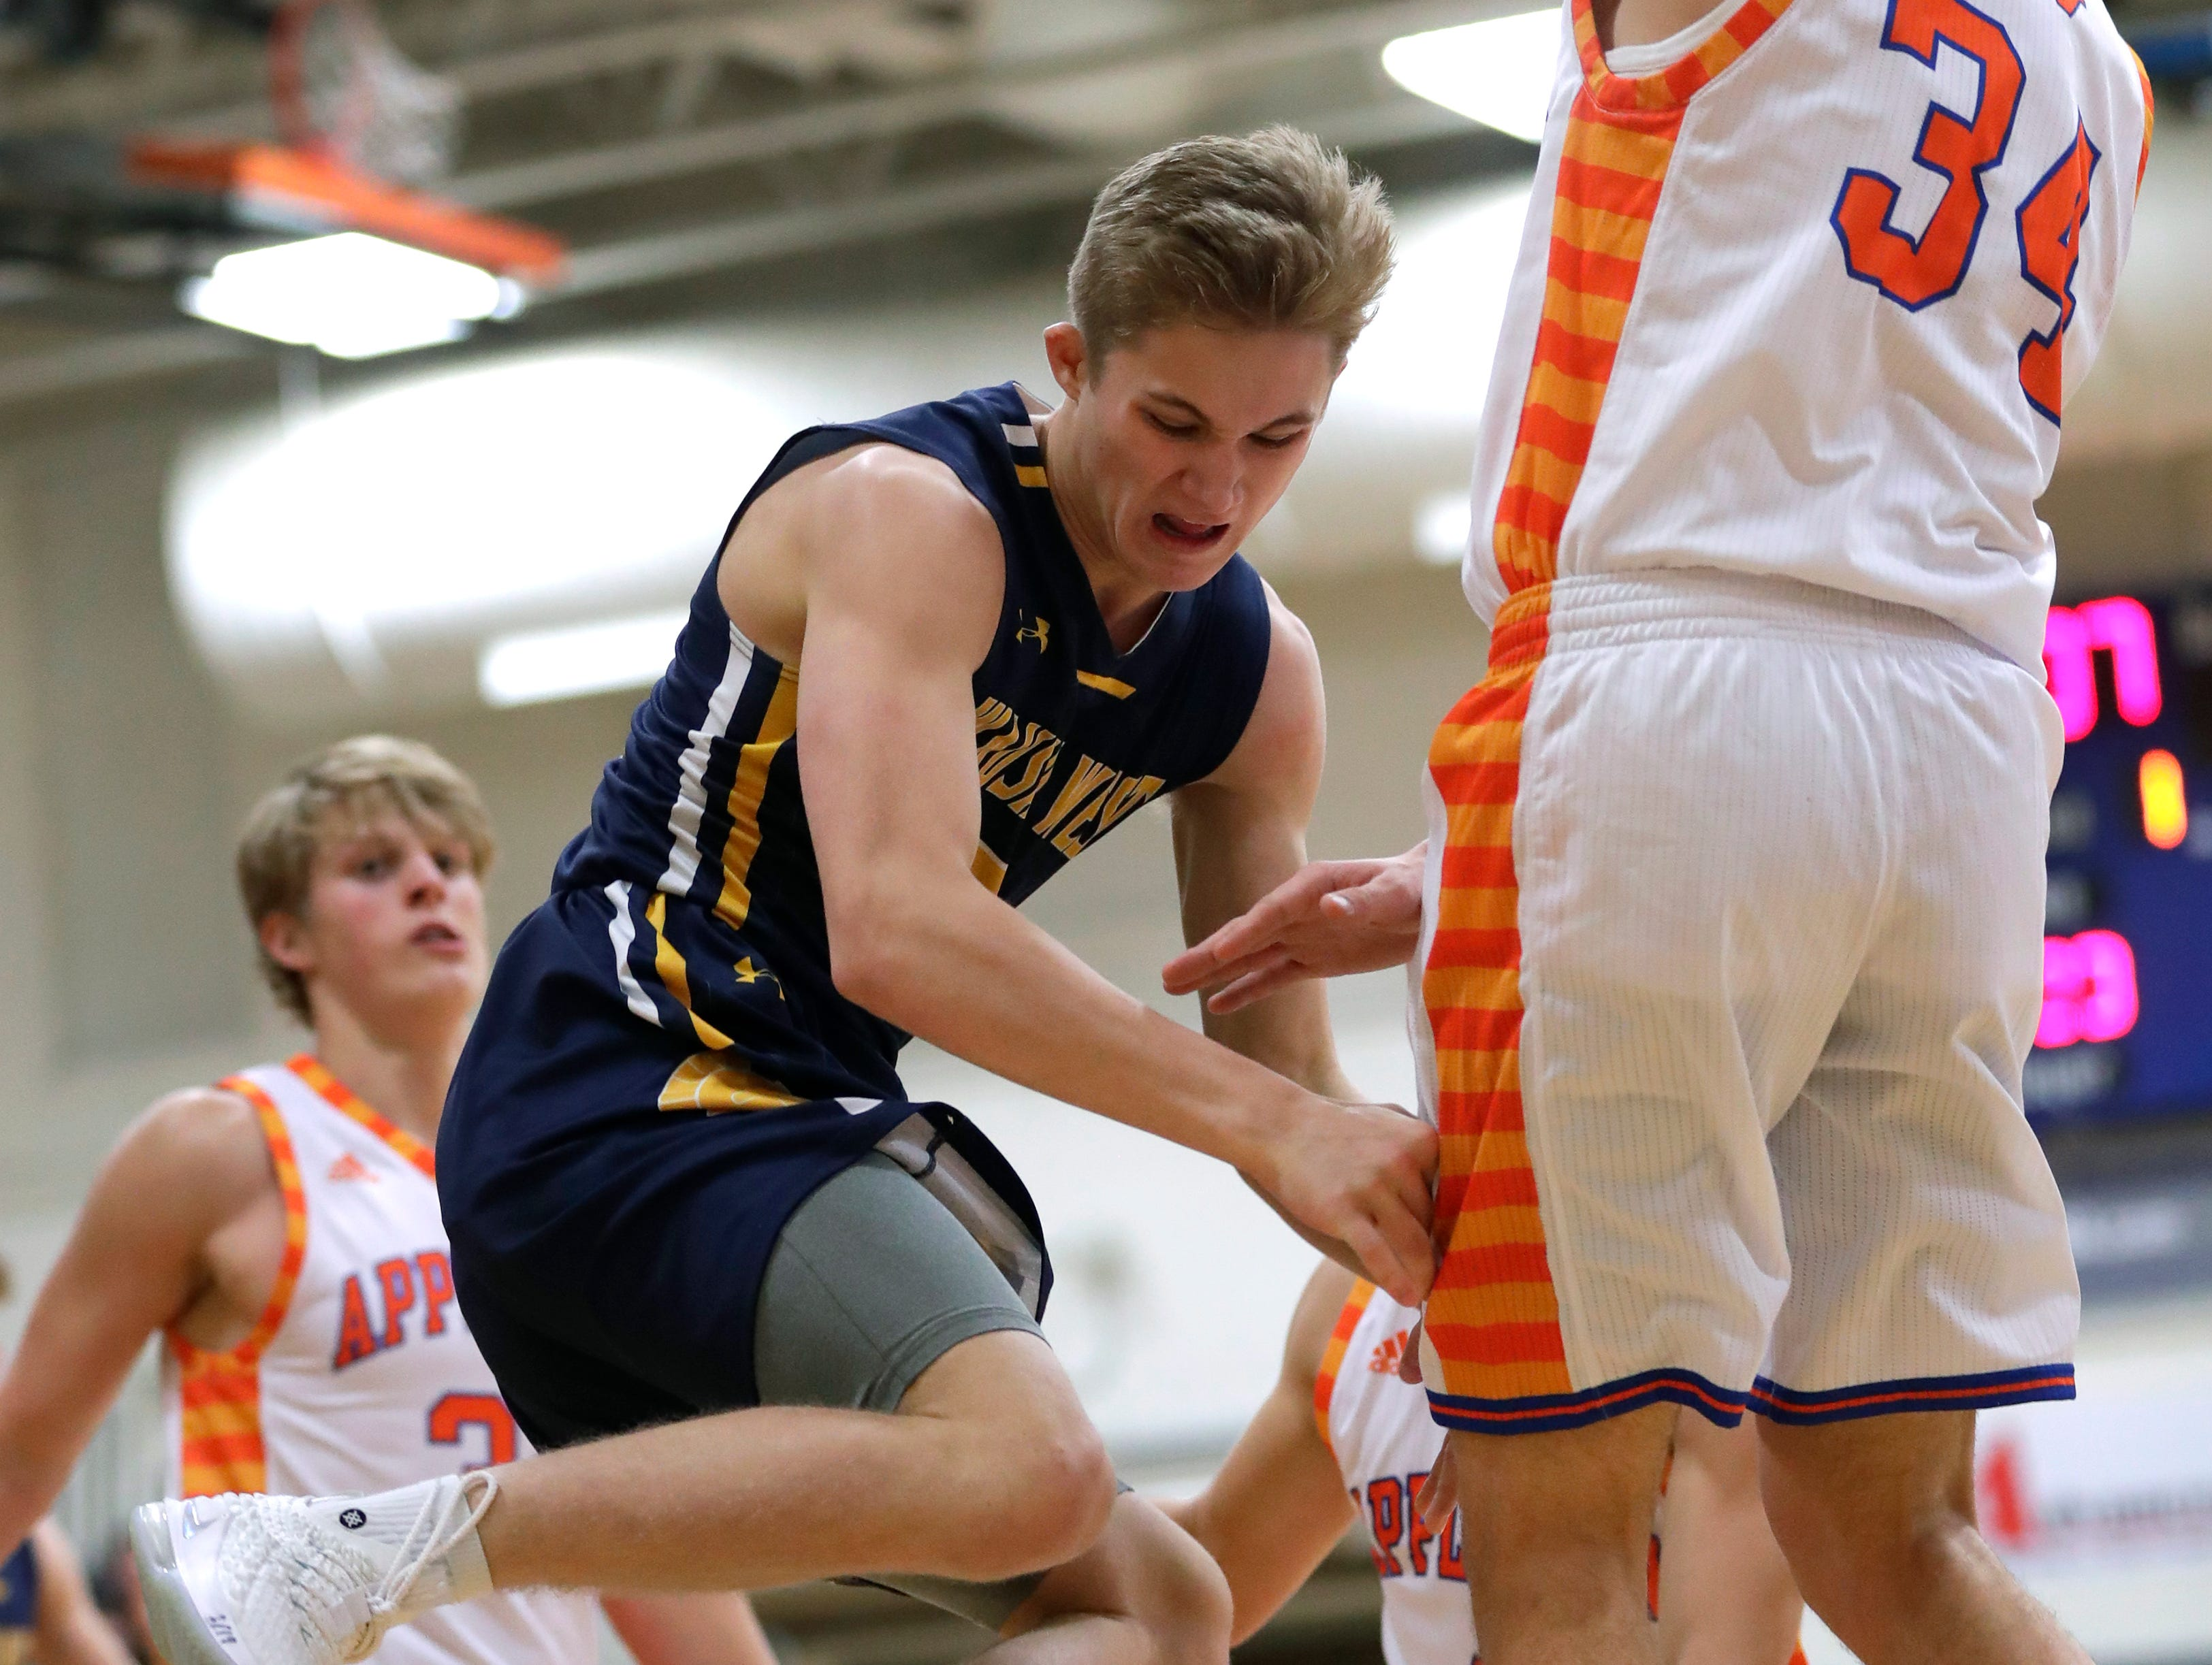 Wausau West High School's Mitchell Zahurones (2) is fouled as he drives to the basket against Appleton West  High School's Spencer Mellberg (34) during their boys basketball game Friday, December 28, 2018, in Appleton, Wis. Dan Powers/USA TODAY NETWORK-Wisconsin